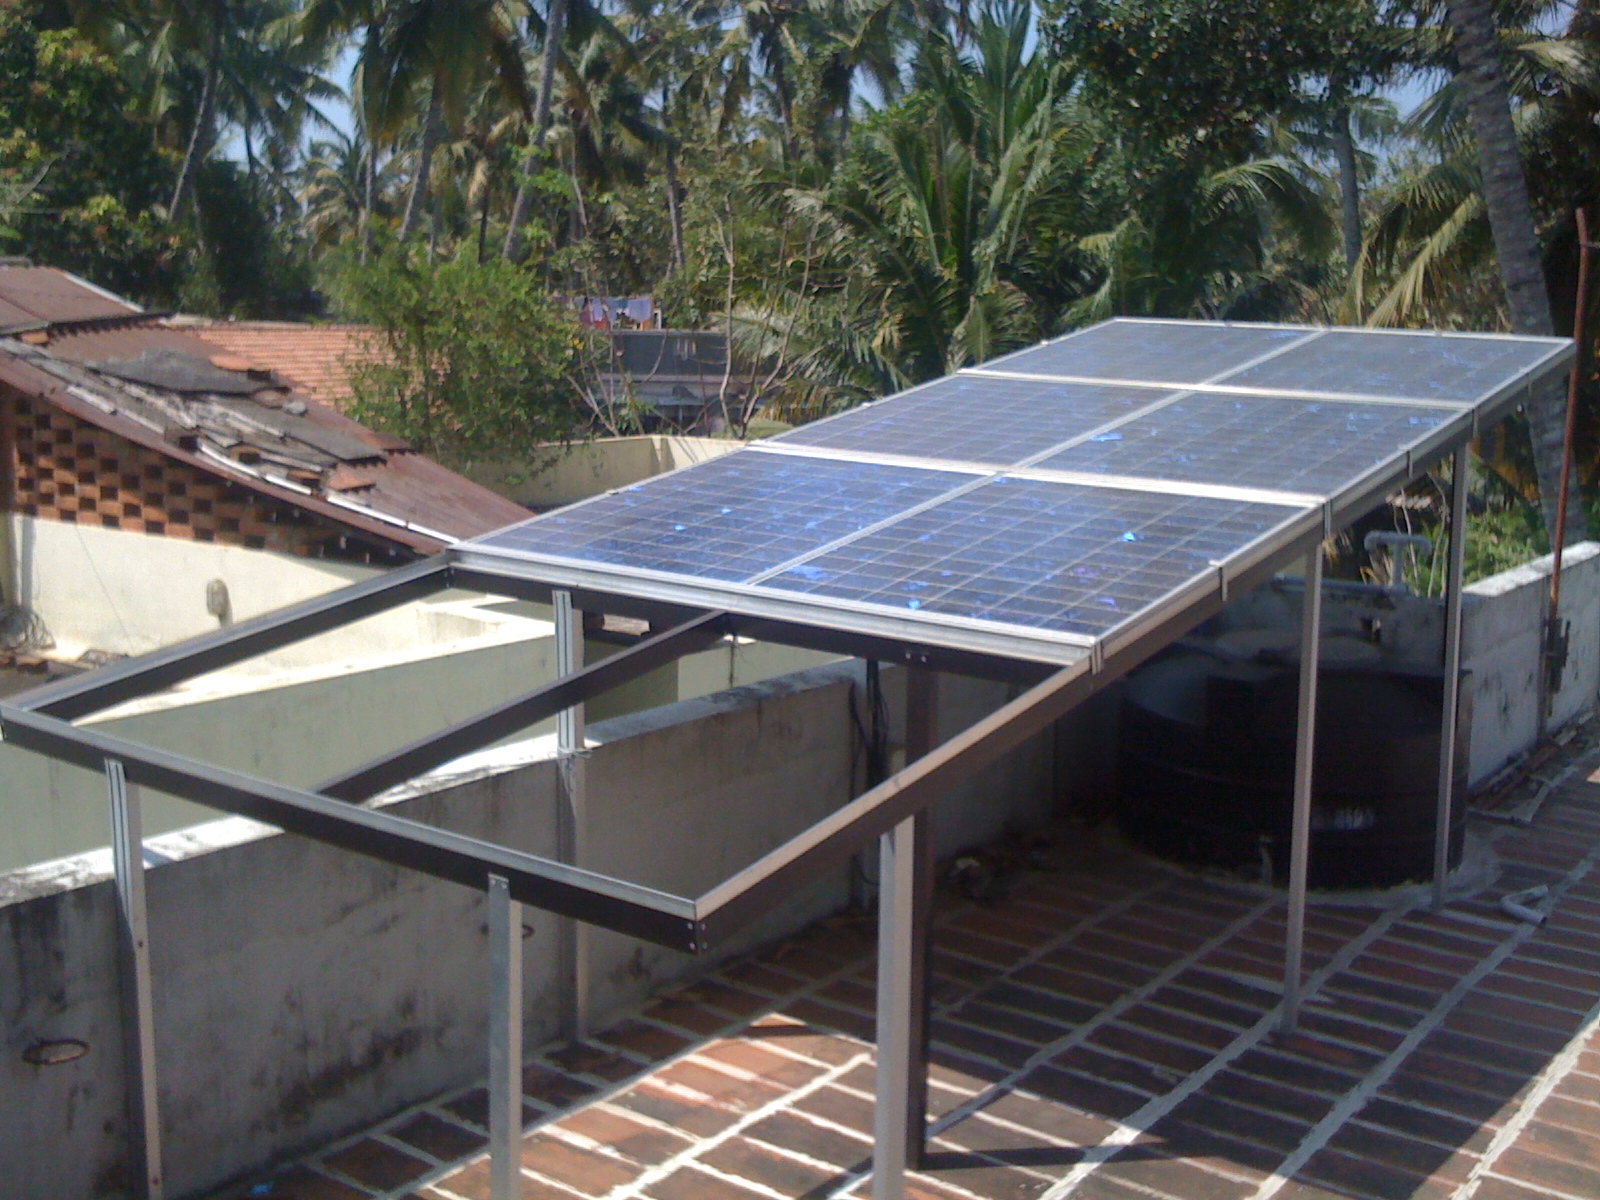 how to make solar panel at home in hindi